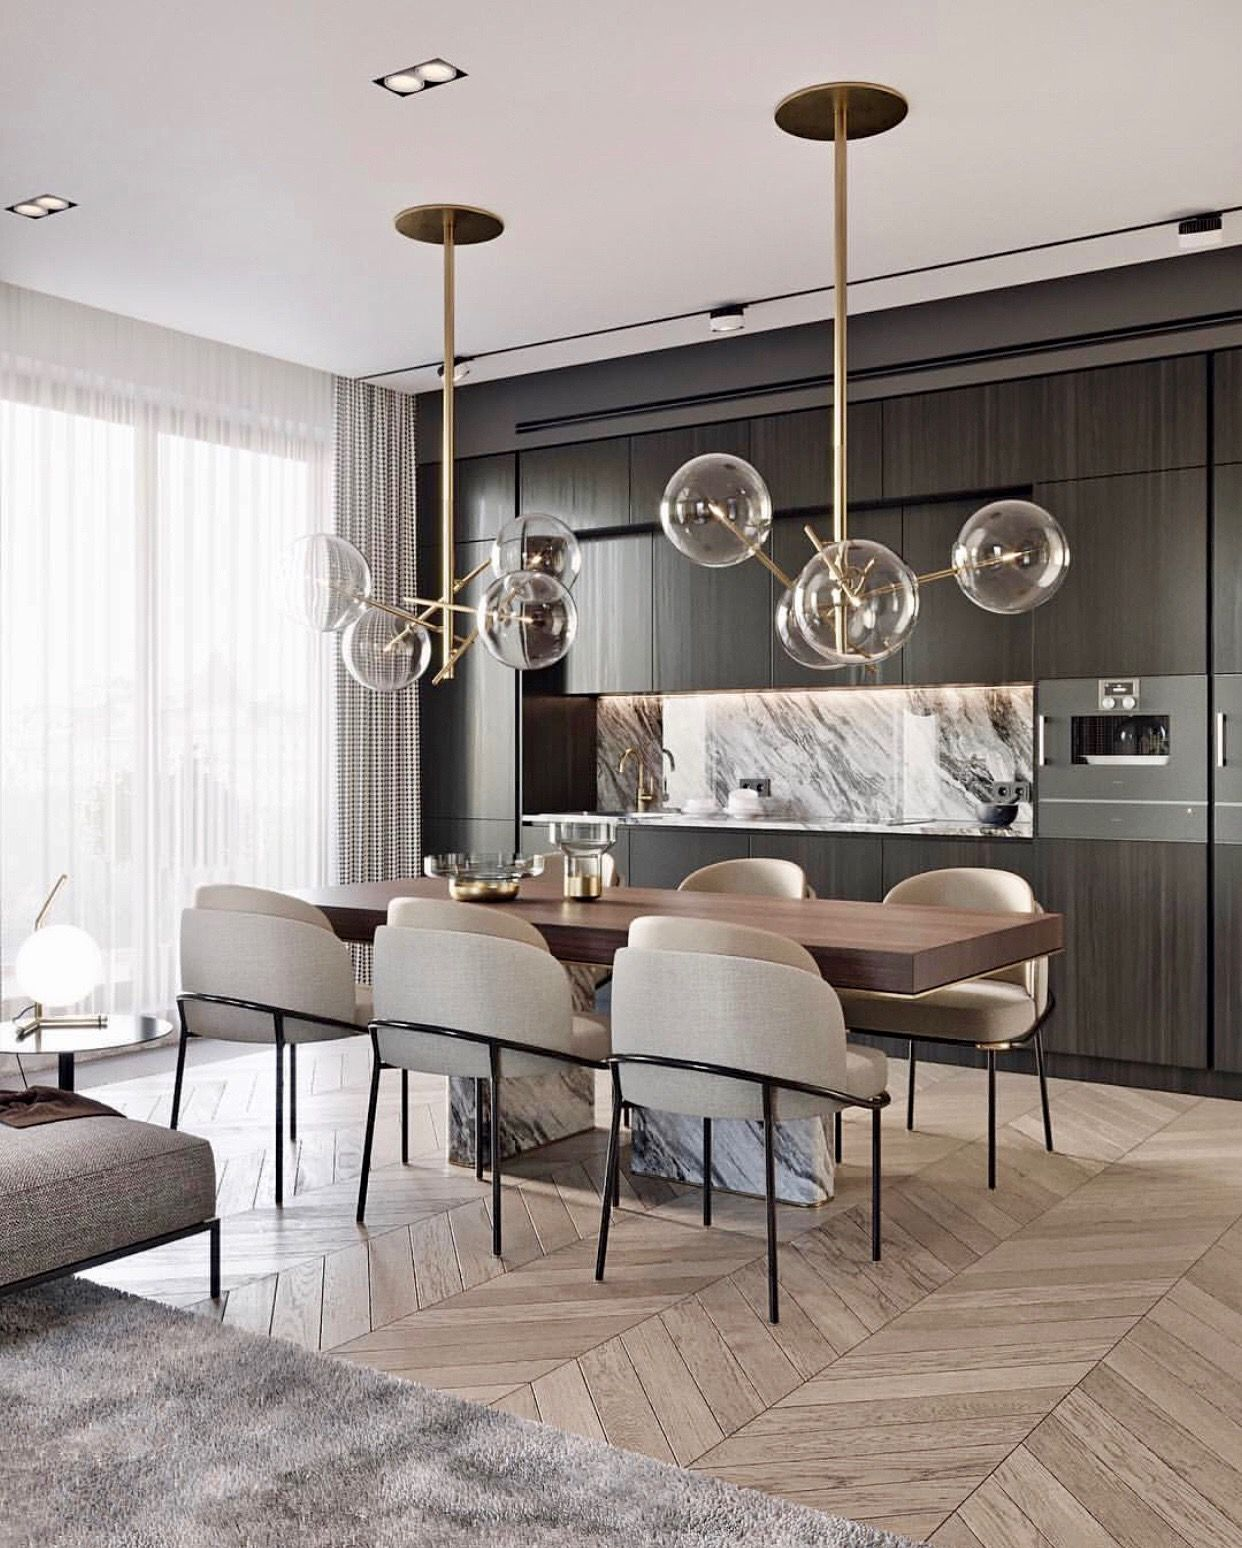 Pin By Ghada Mohammad On Kitchen Design